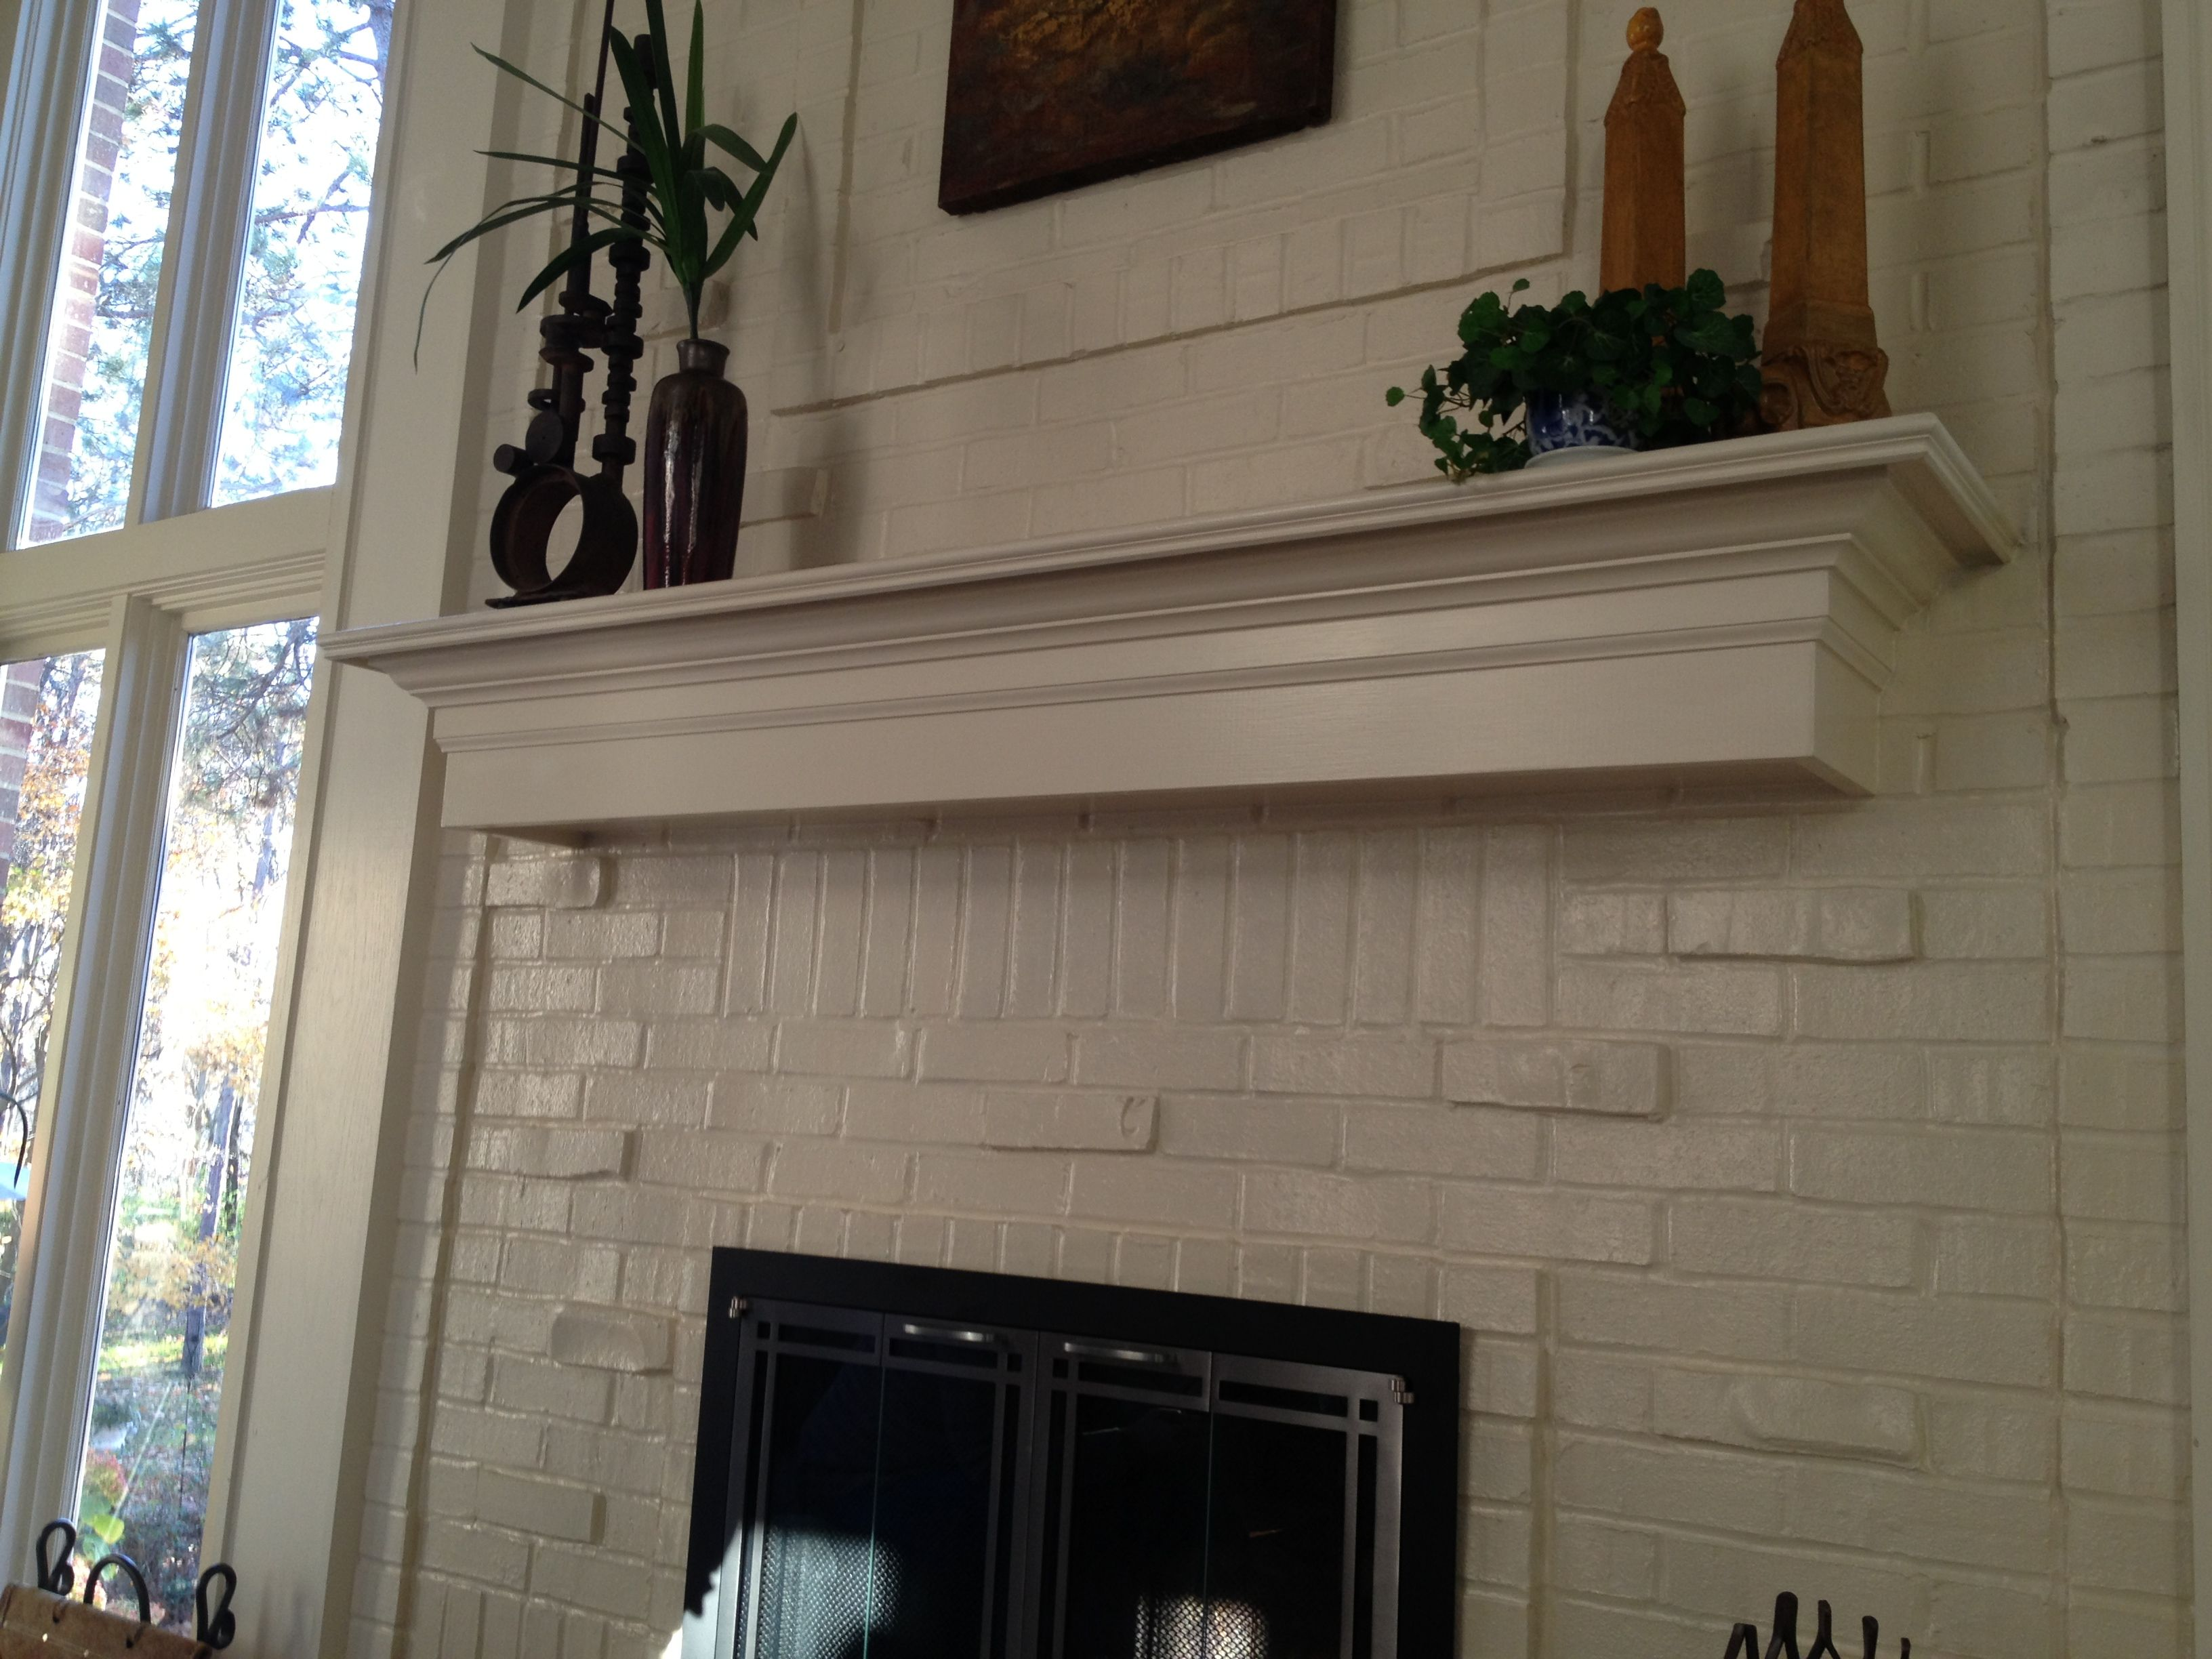 mantel ideas for brick fireplace white painted and diy floating shelf wire wall storage with hooks pottery barn kids black coat rack large shelves over window wooden kitchen